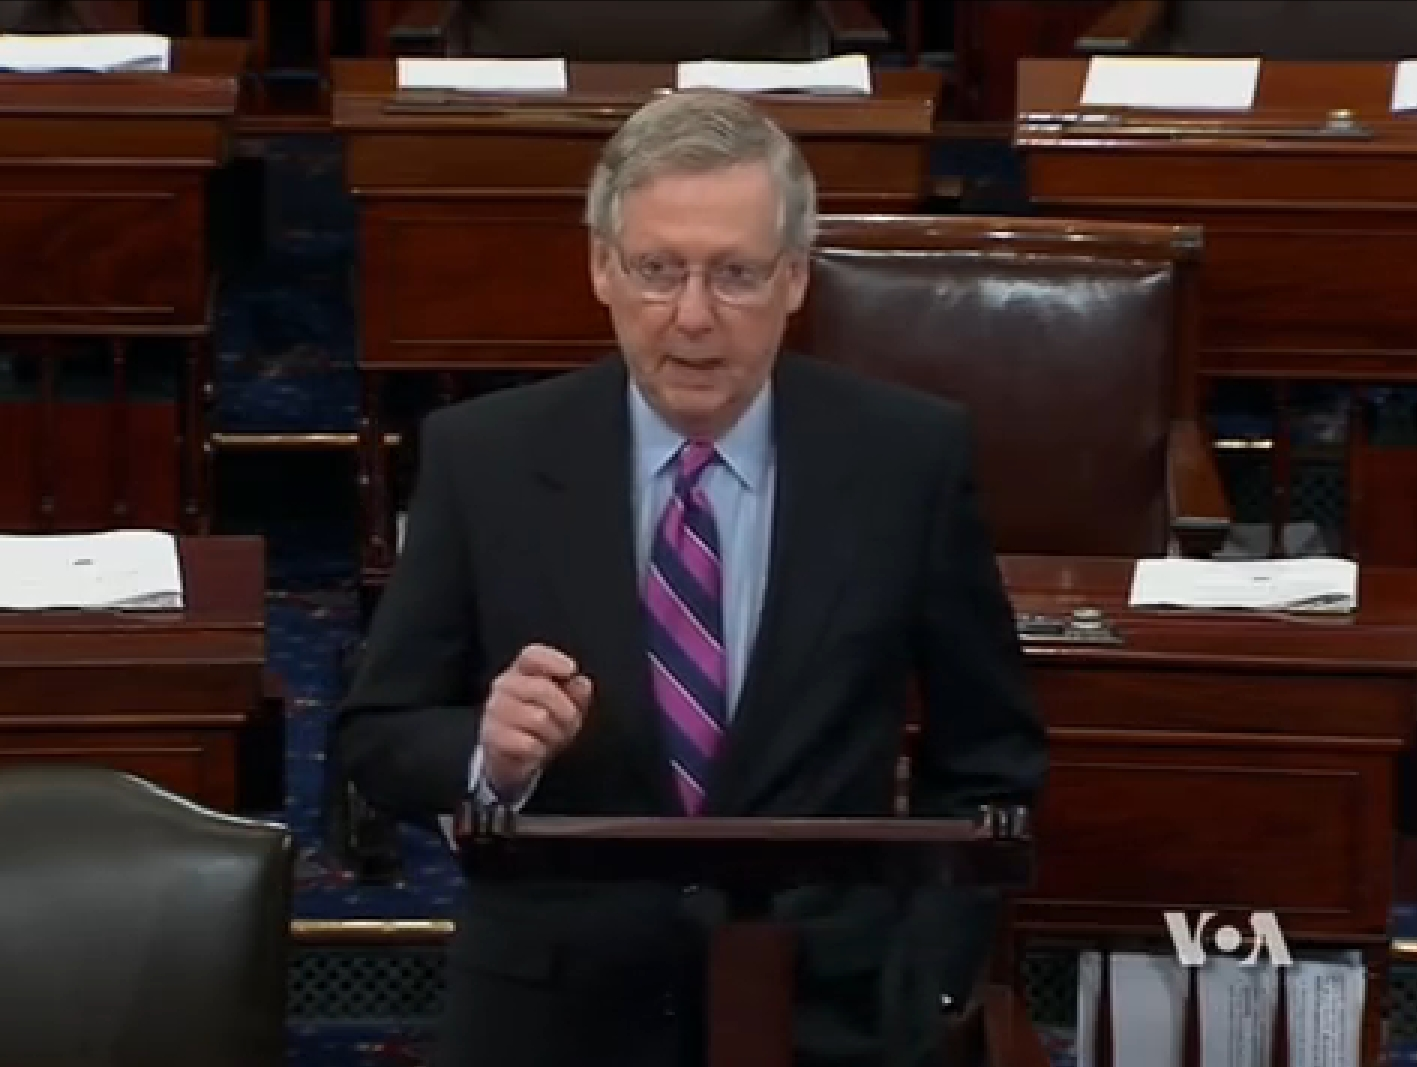 Senate Majority Leader Mitch McConnell speaking to congress on the nuclear negotiations with Iran. Image-VOA